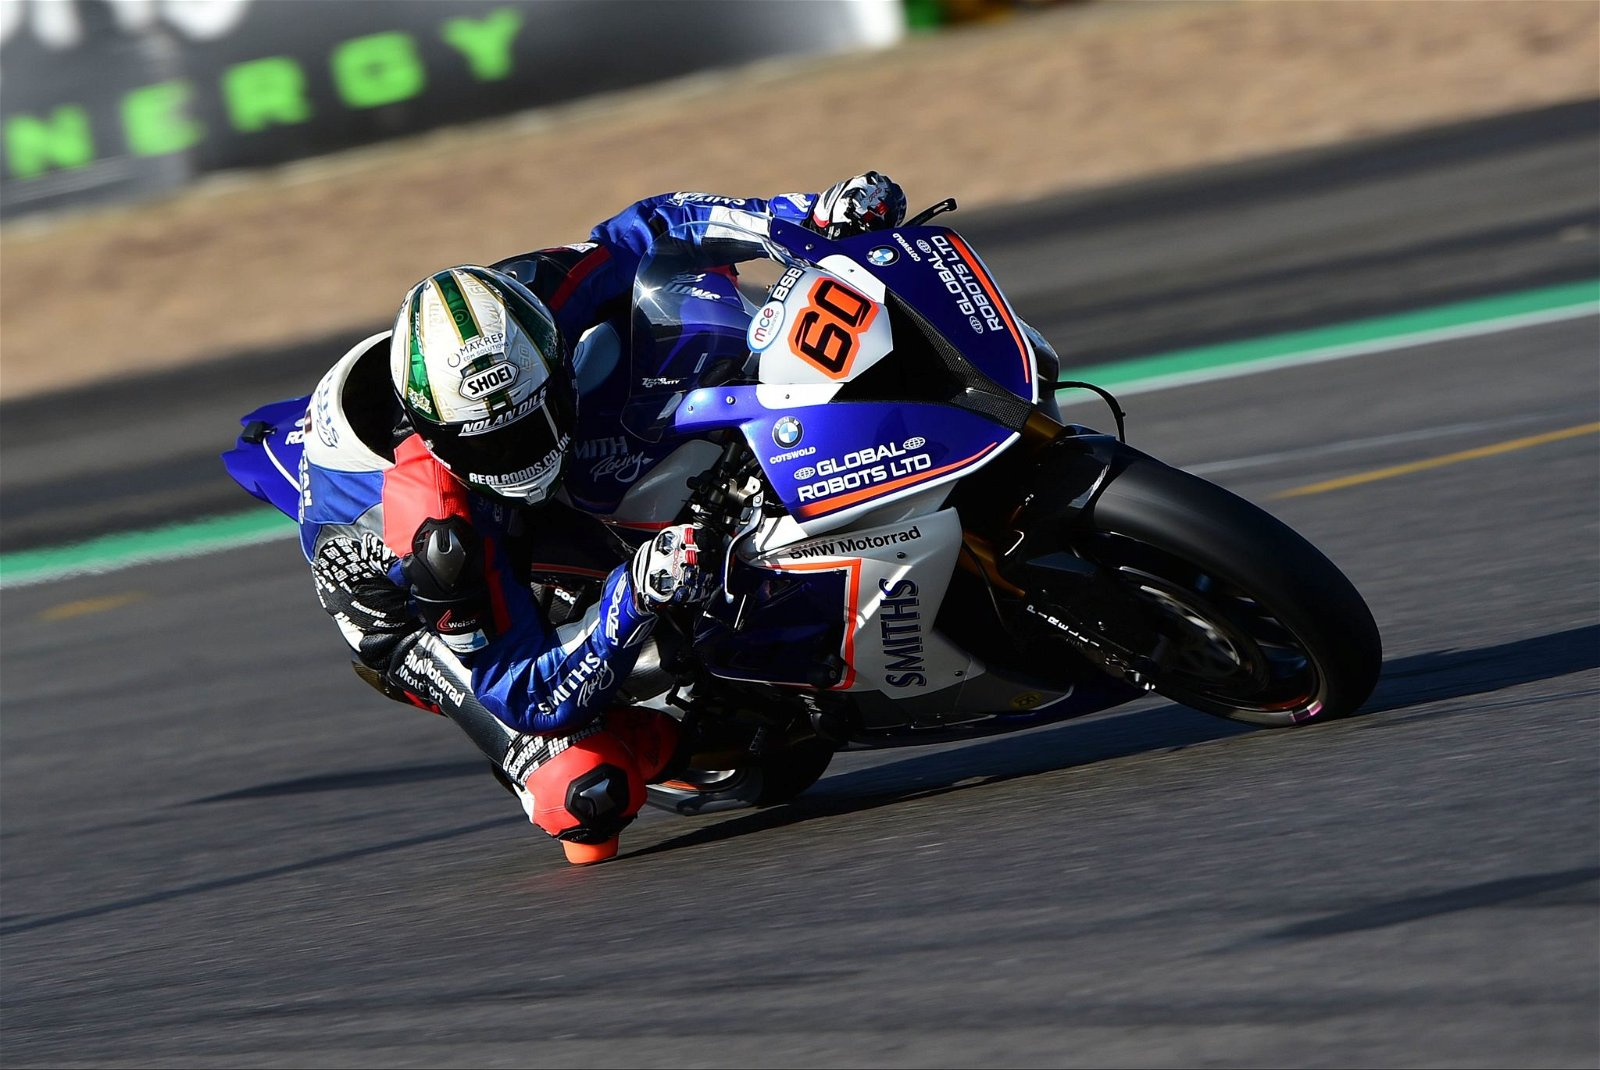 Peter Hickman in BSB 2017 action credit Jon Jessop Photography